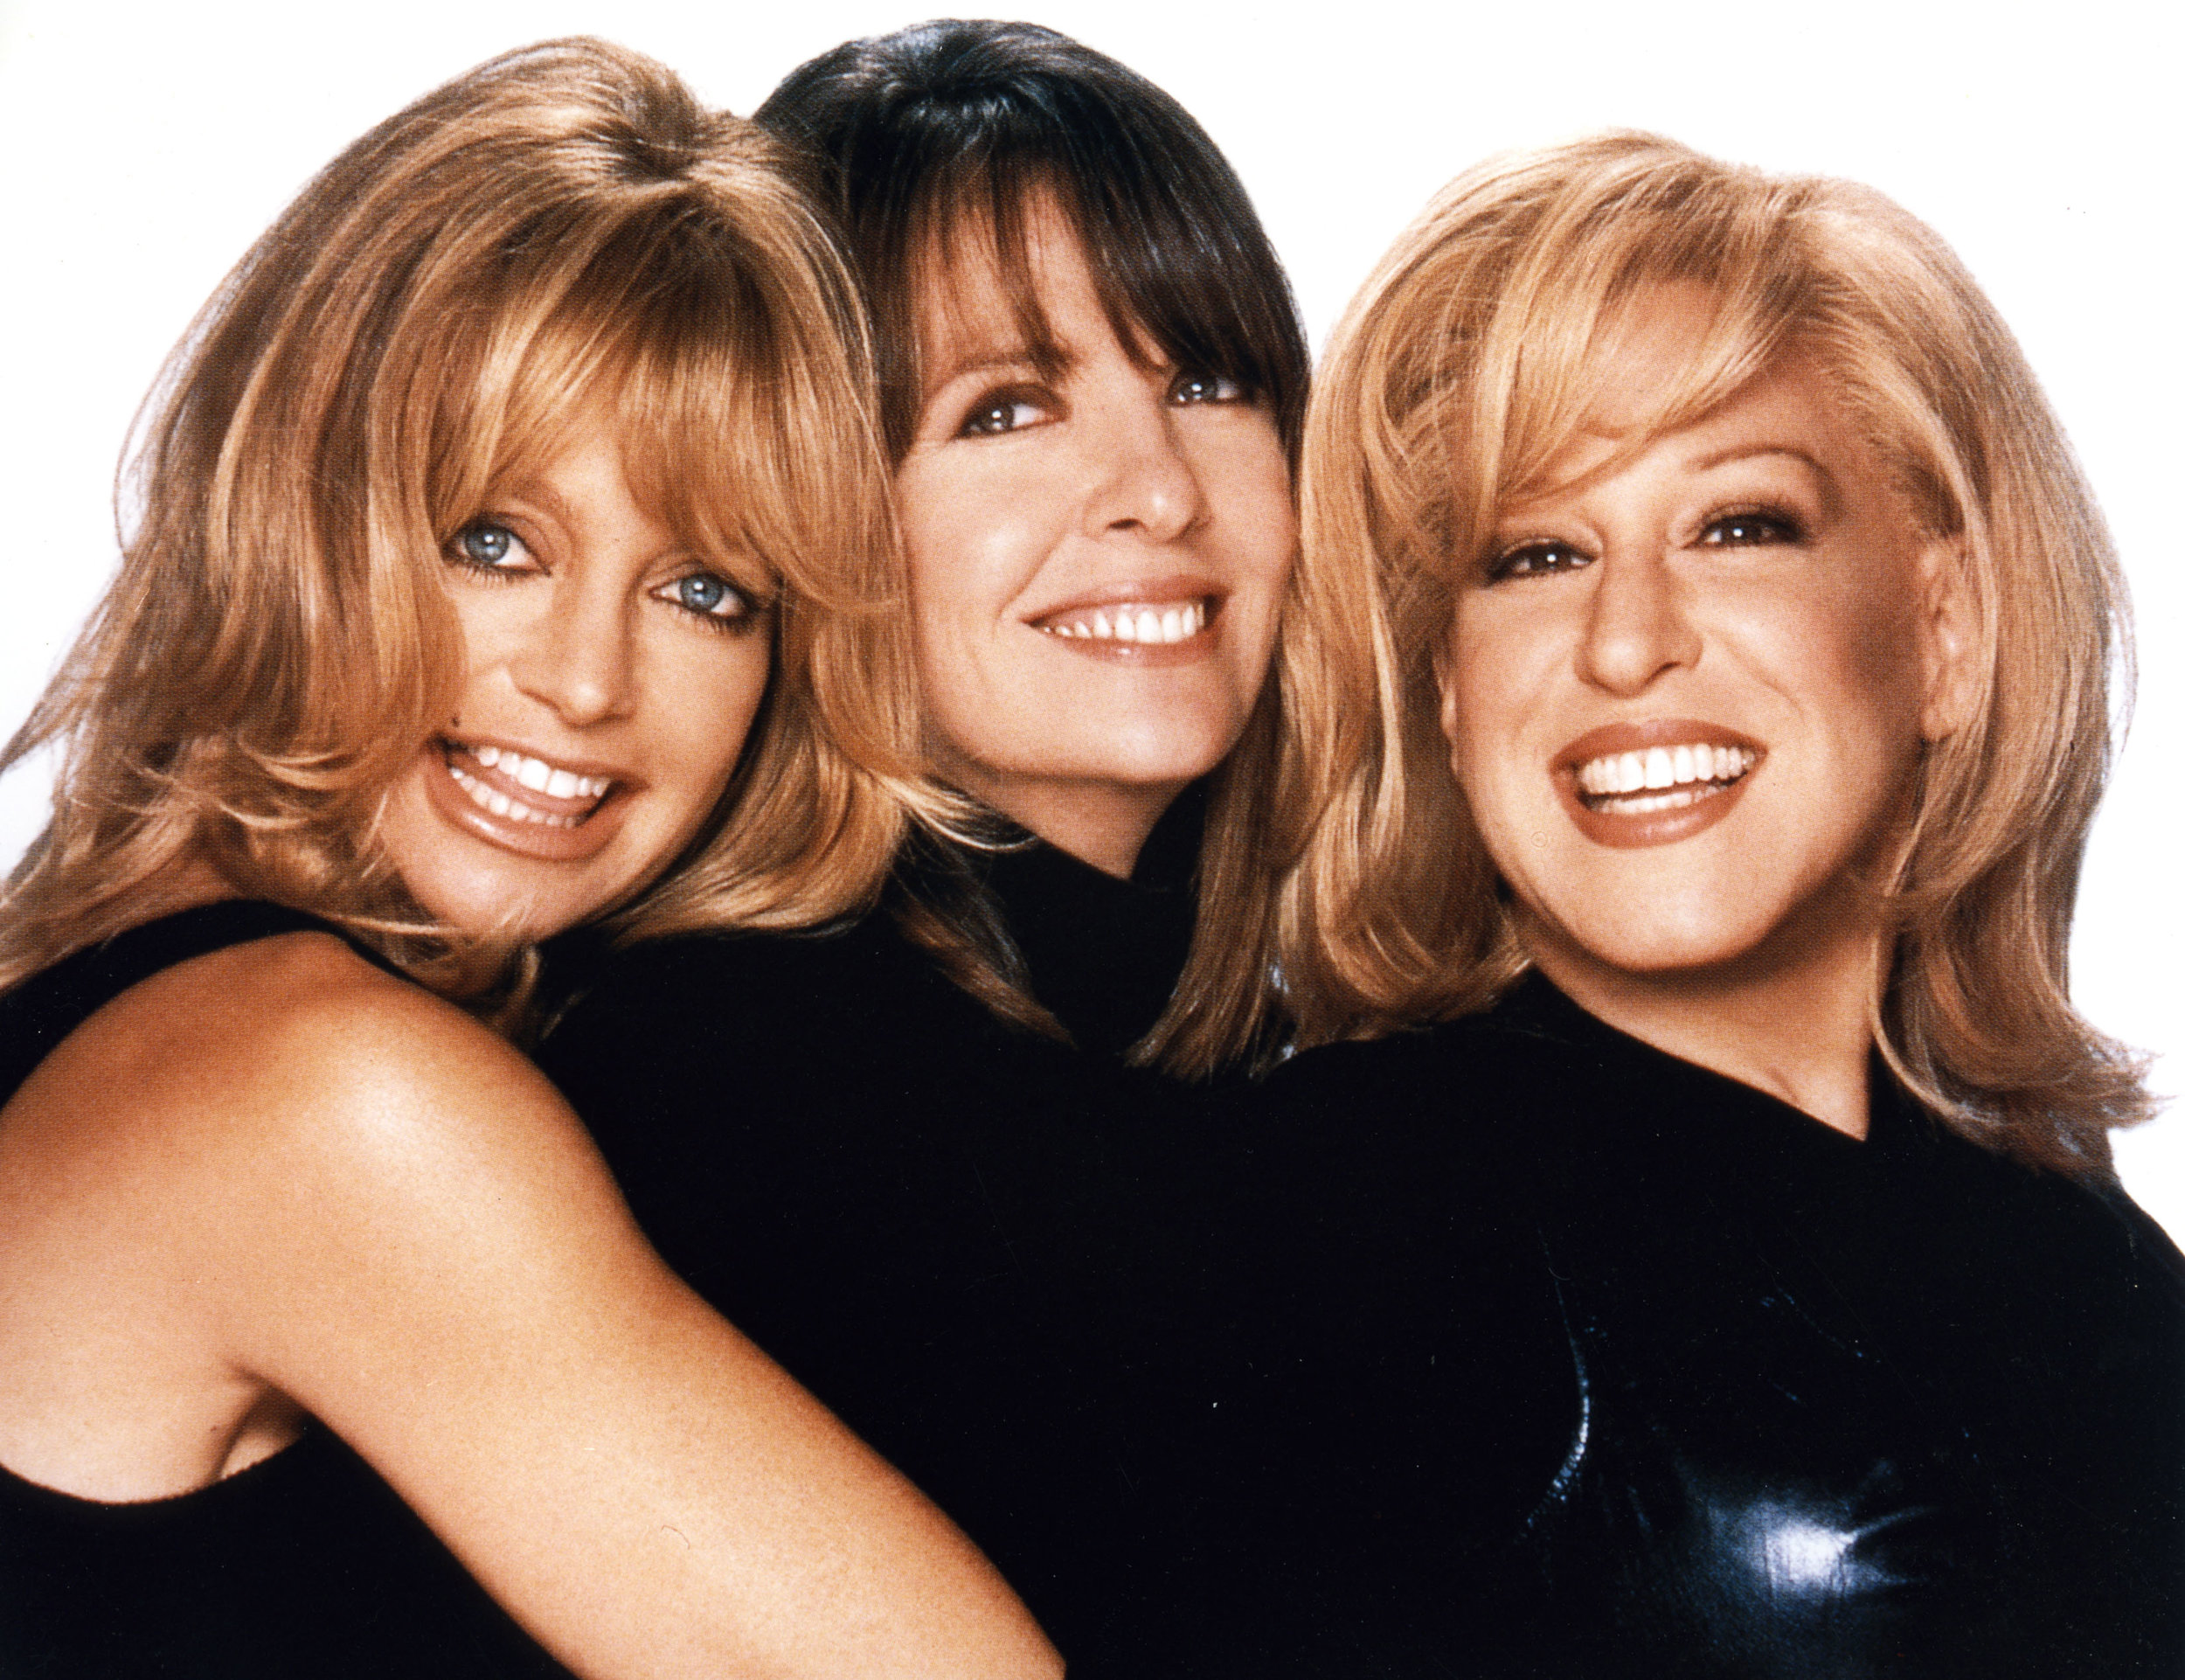 Diane with Bette Midler and Goldie Hawn in The First Wives Club